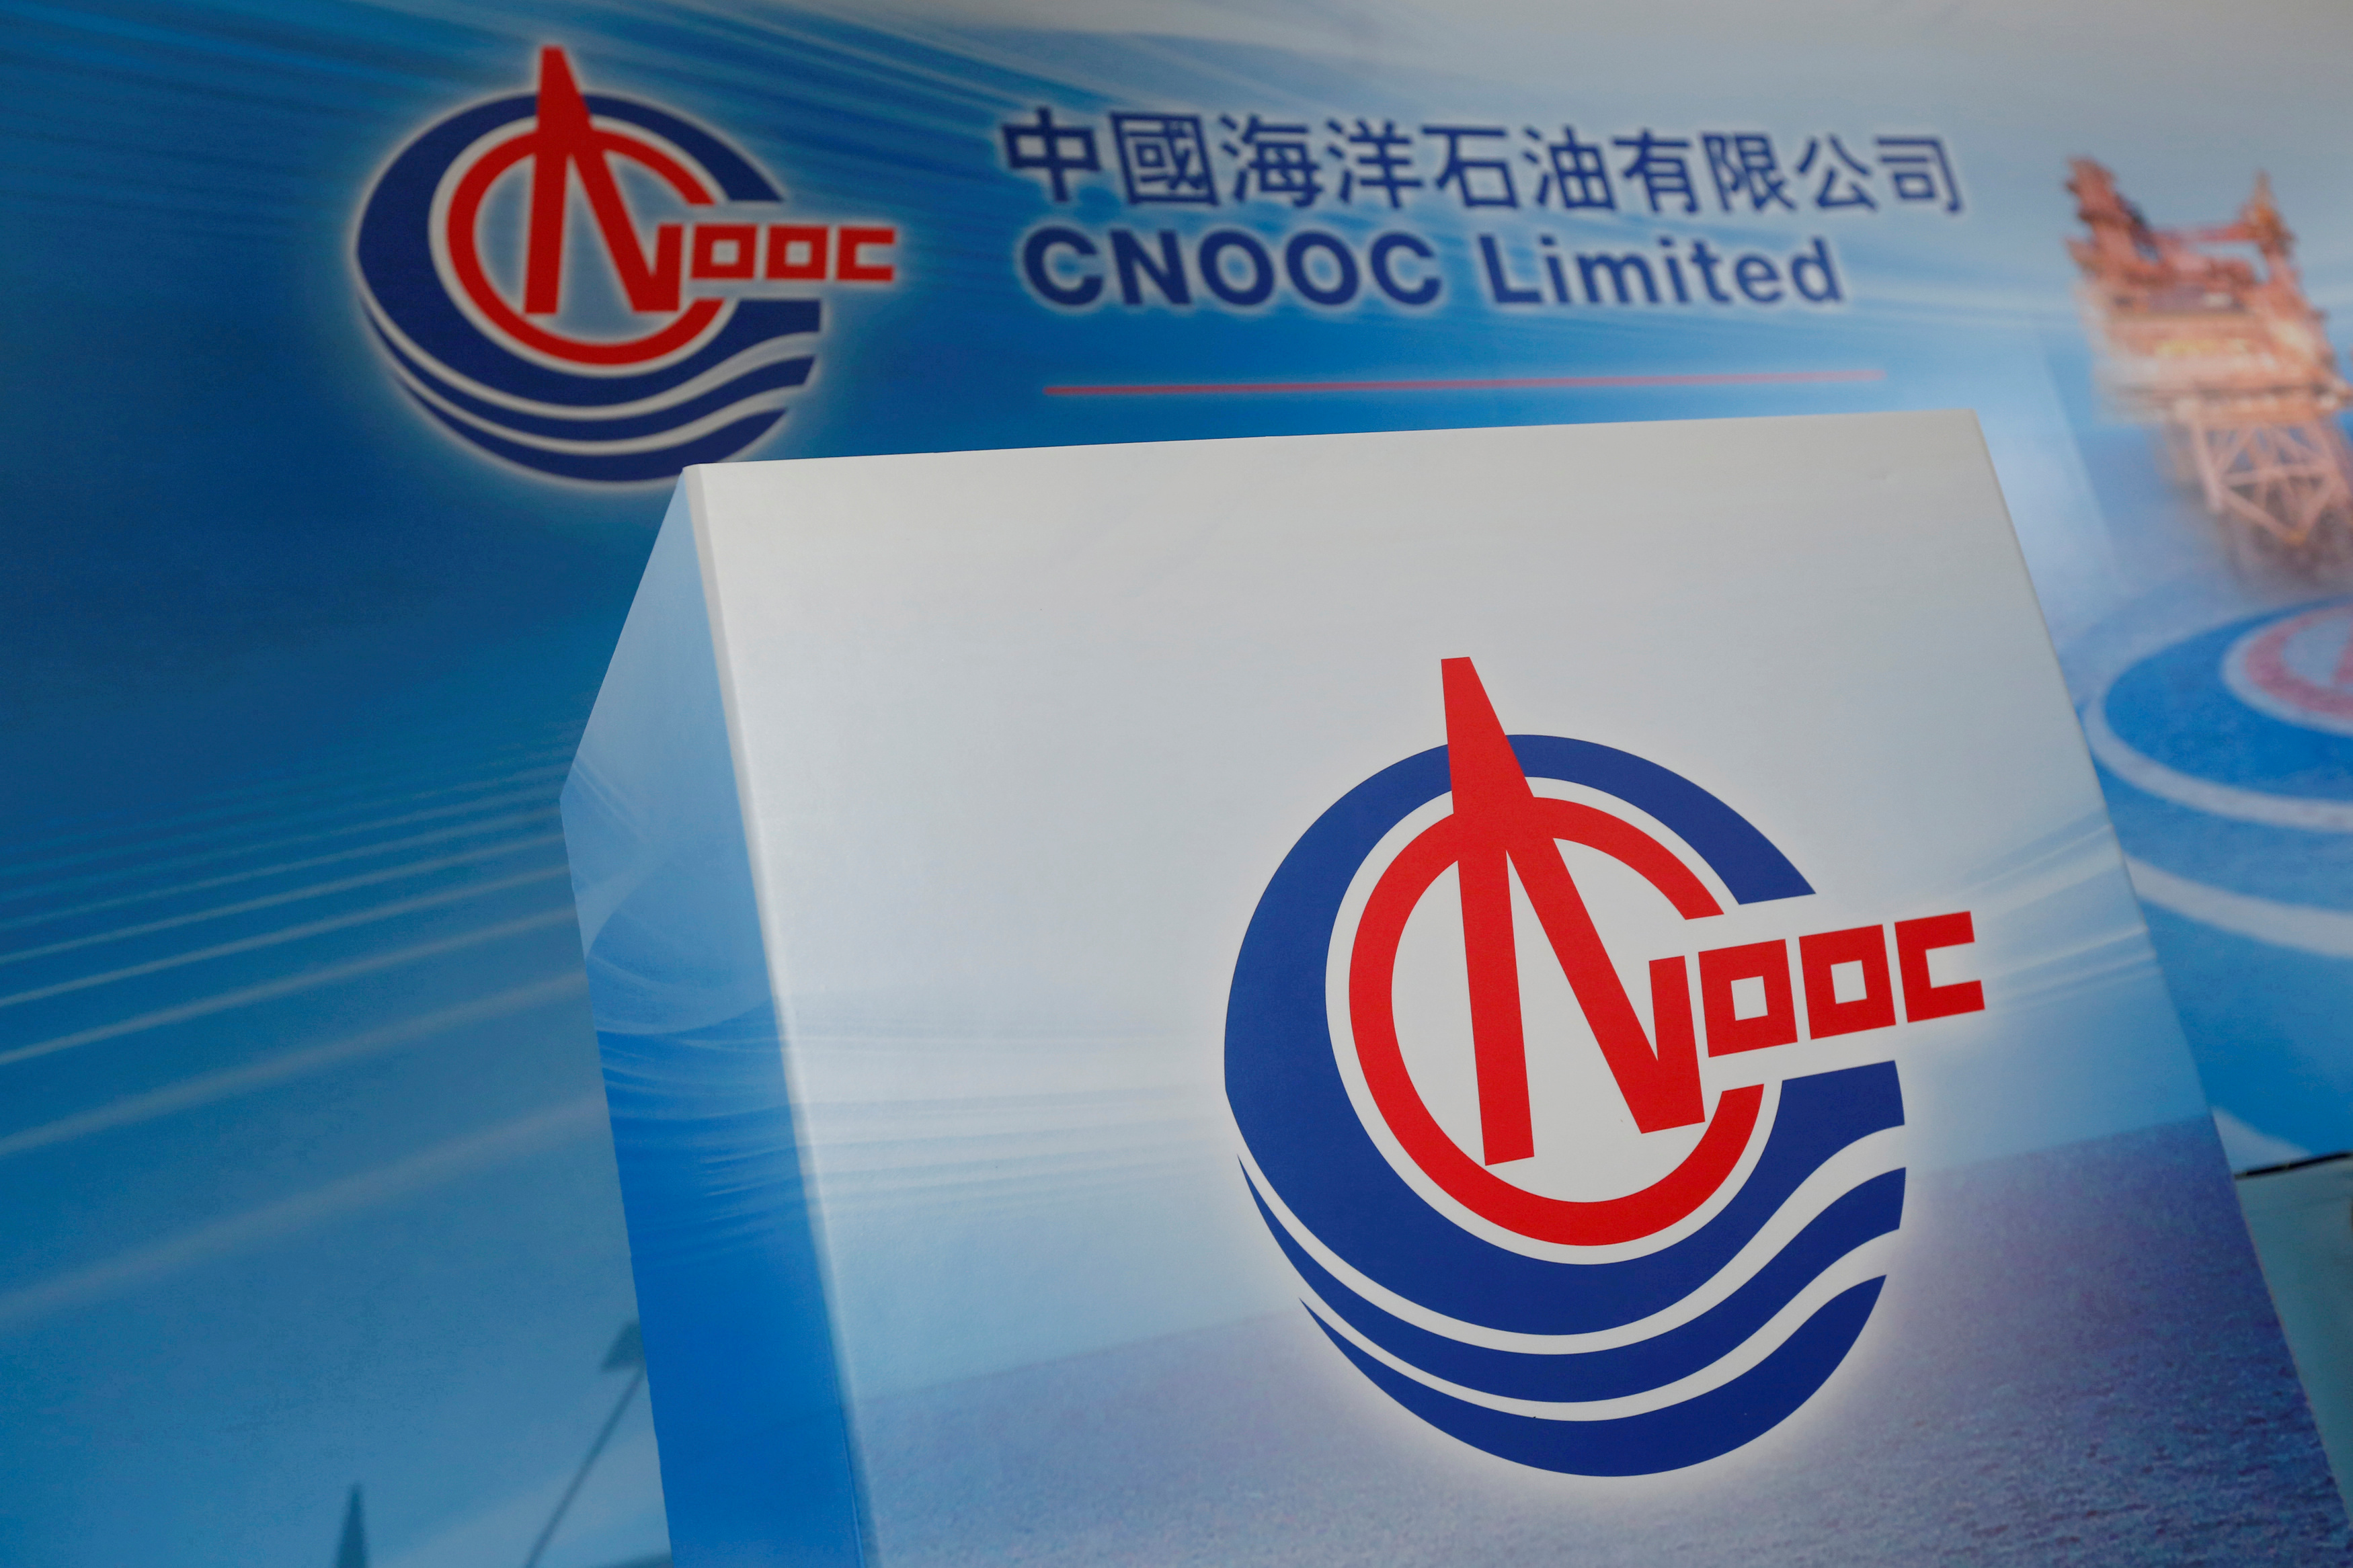 Logos of China National Offshore Oil Corporation (CNOOC) are displayed at a news conference on the company's interim results in Hong Kong, China, March 23, 2017. REUTERS/Bobby Yip